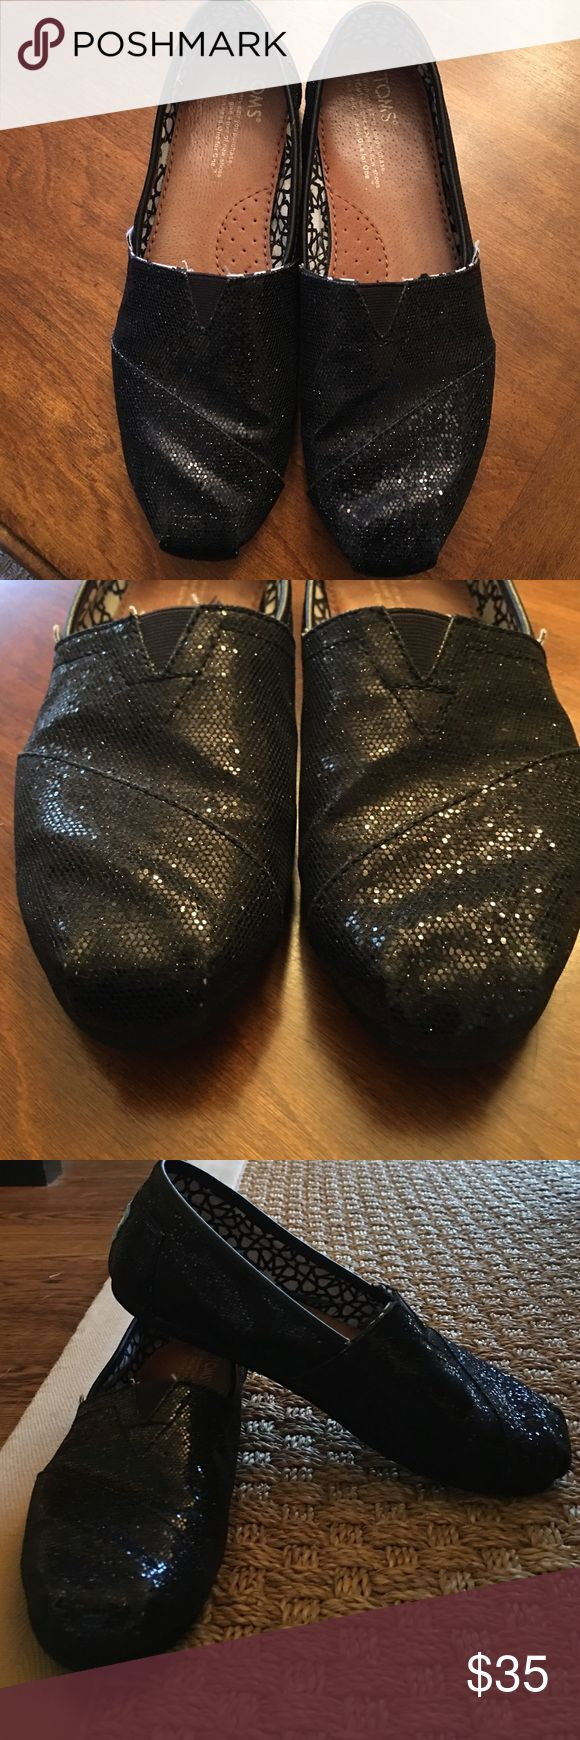 TOMS Black glitter TOMS! Like new.. Only worn a couple of times! Sz 7.5 TOMS Shoes Flats & Loafers